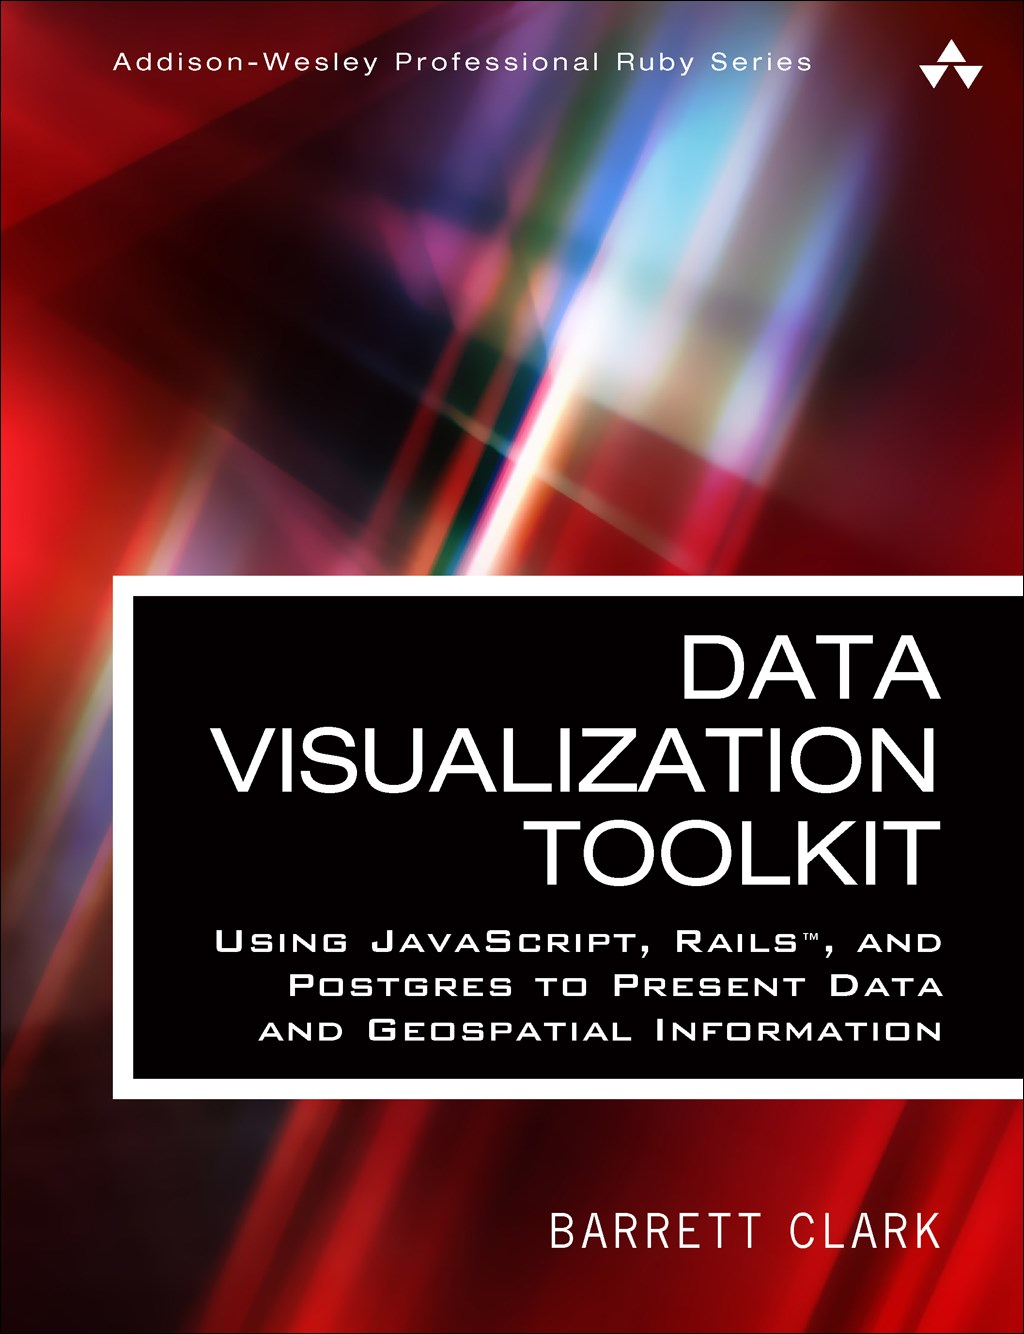 Data Visualization Toolkit: Using JavaScript, Rails, and